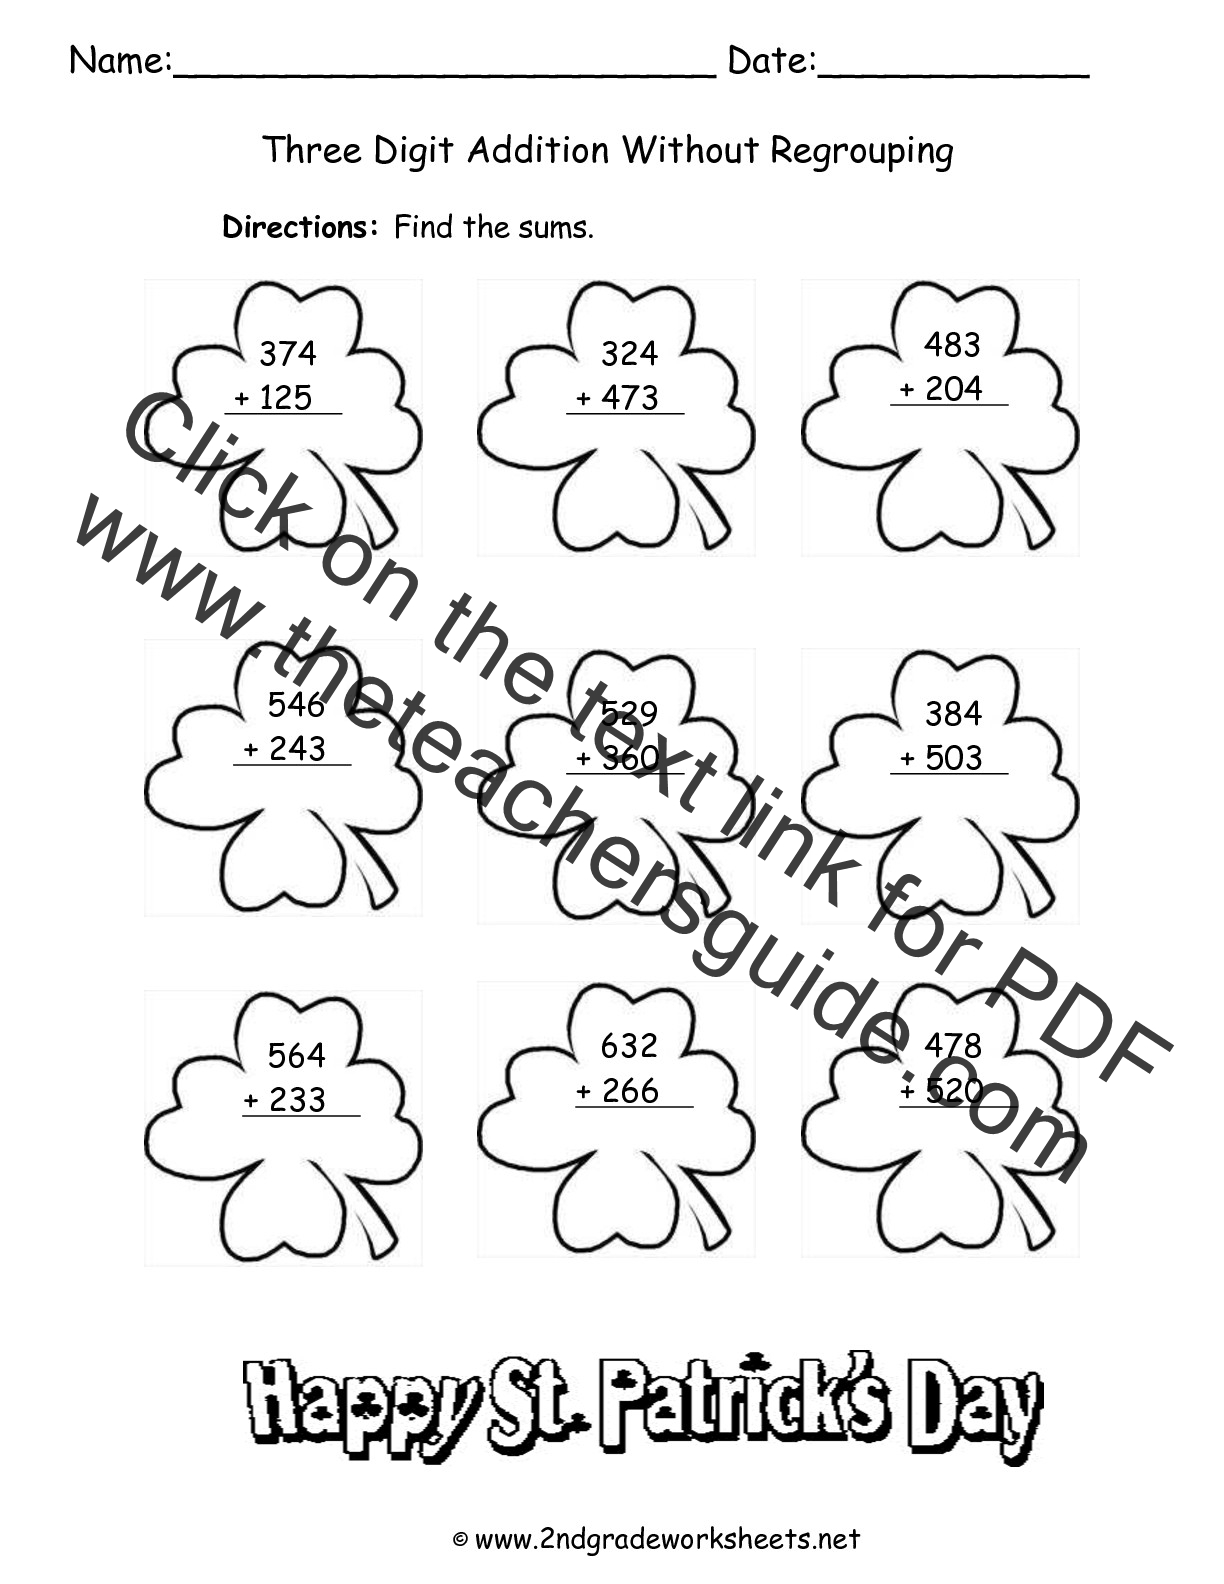 image about St Patrick's Day Worksheets Free Printable named St. Patricks Working day Printouts and Worksheets